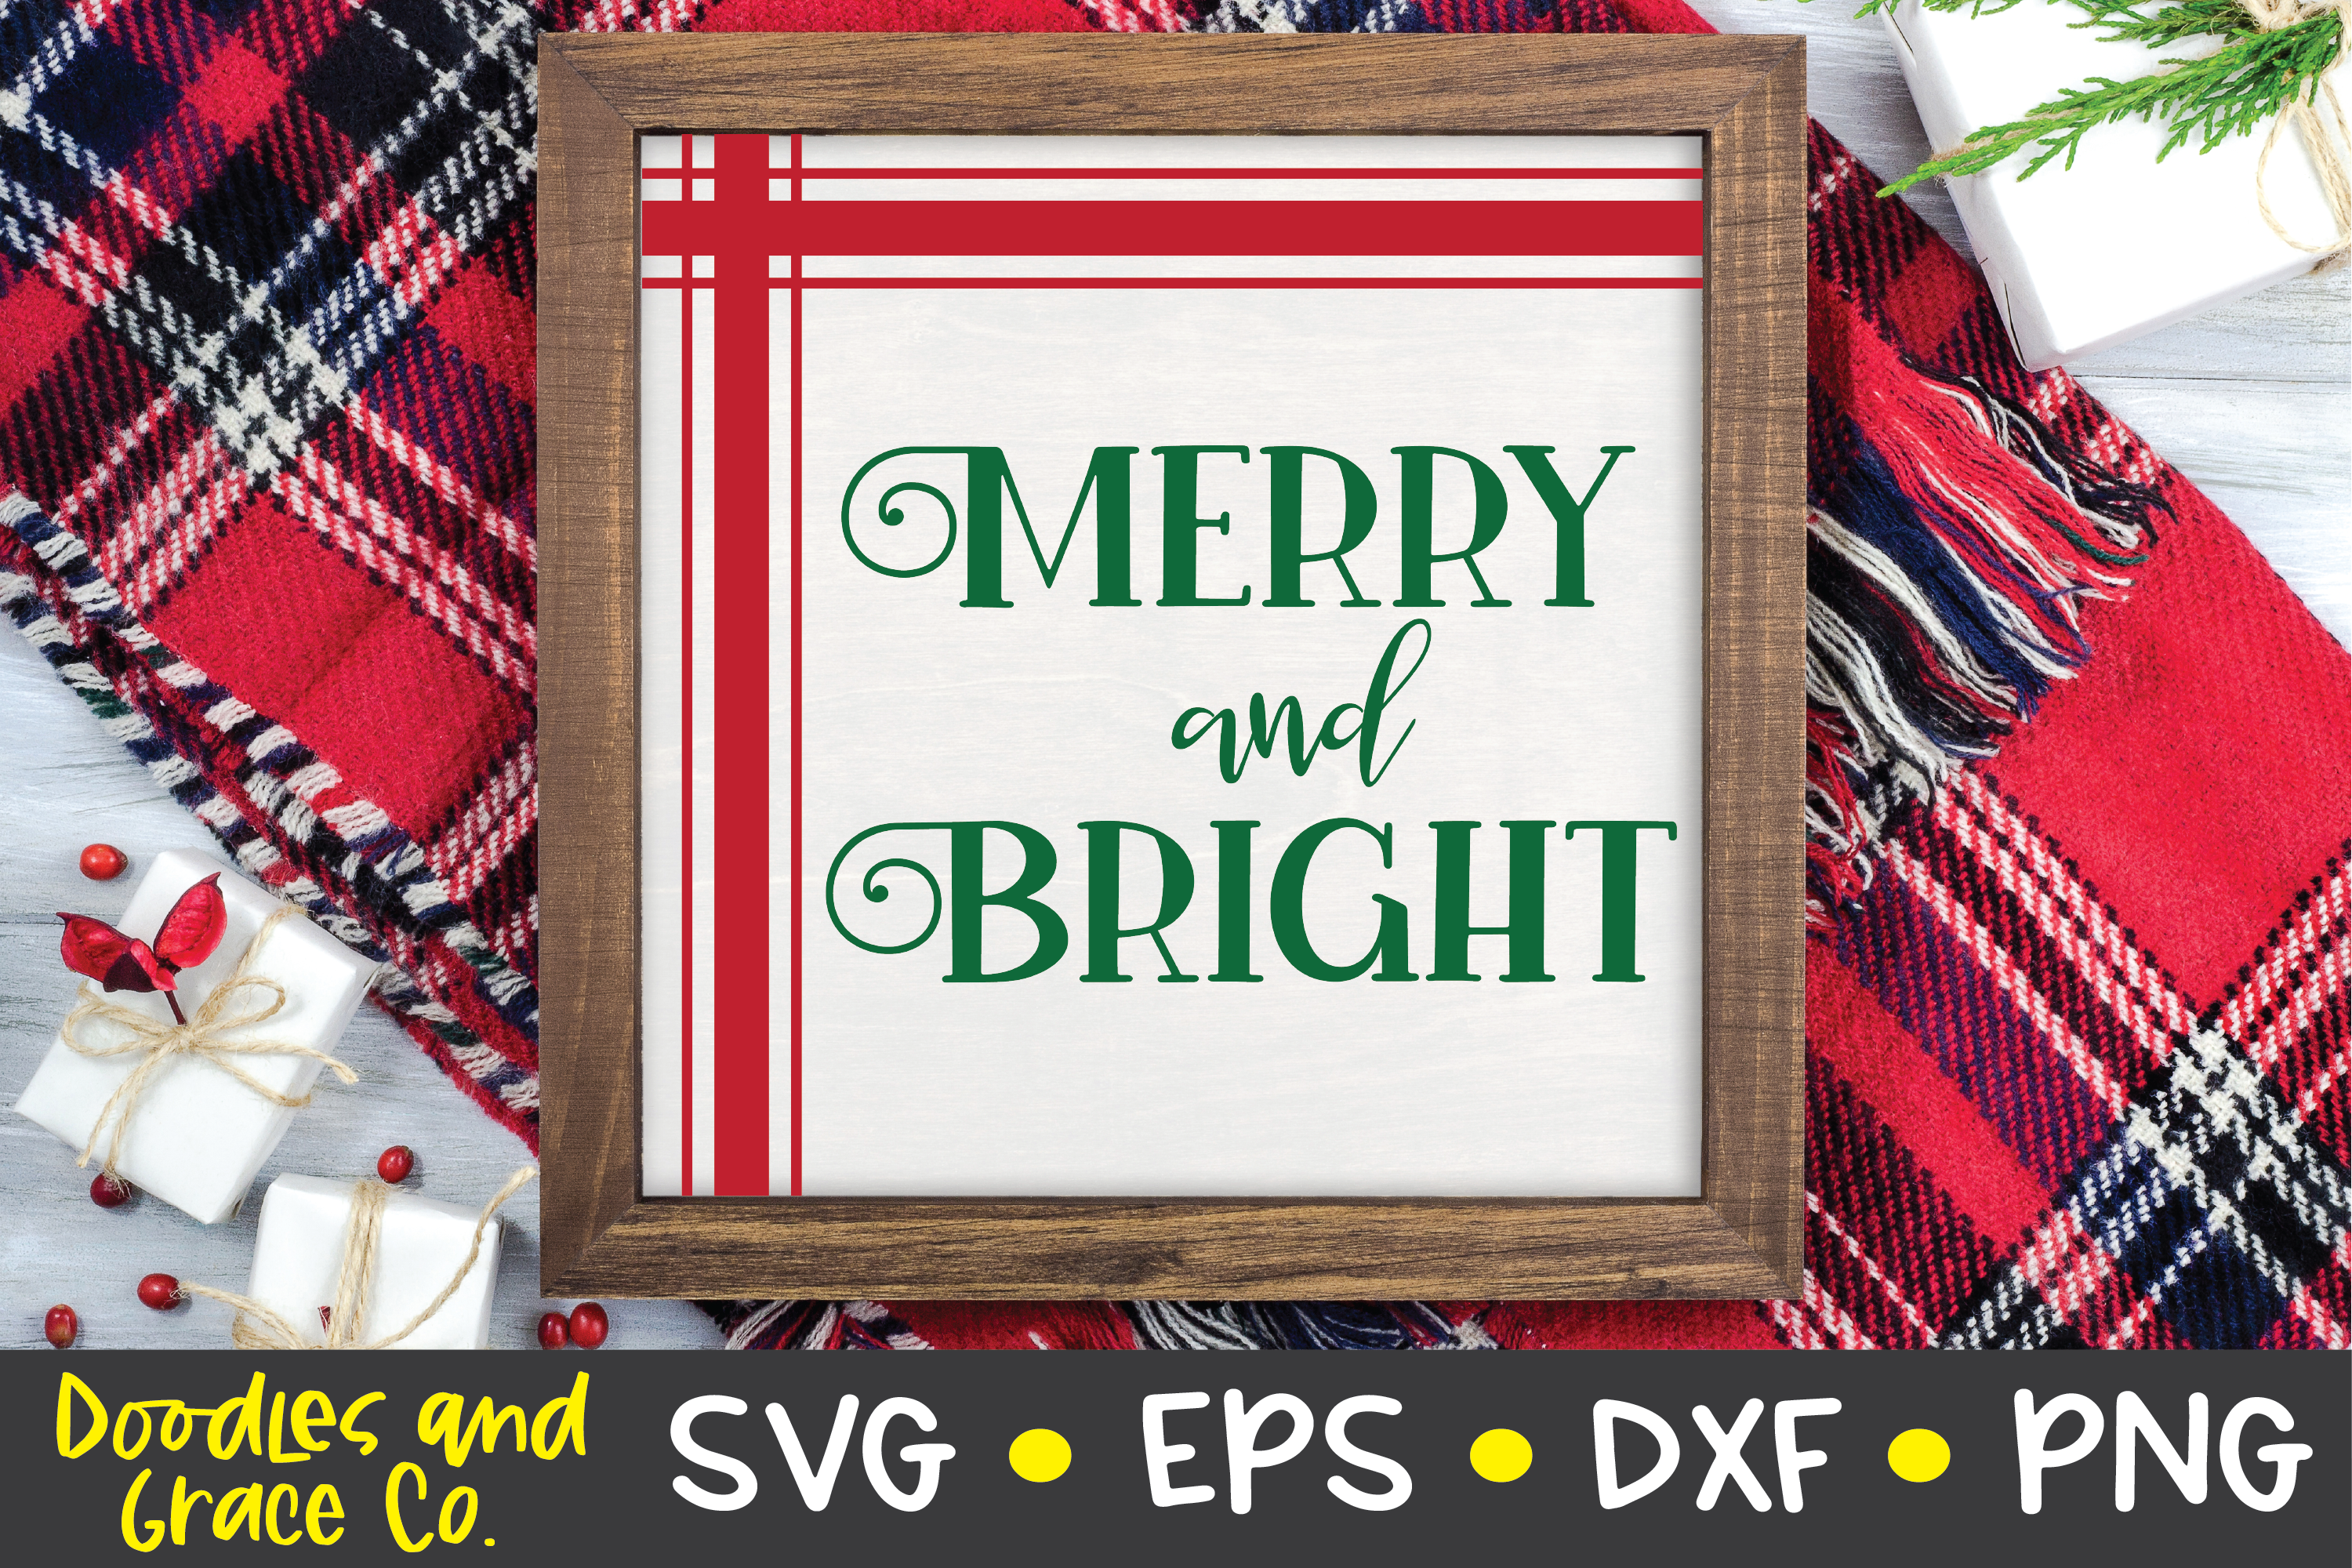 Merry and Bright SVG - Christmas SVG example image 1